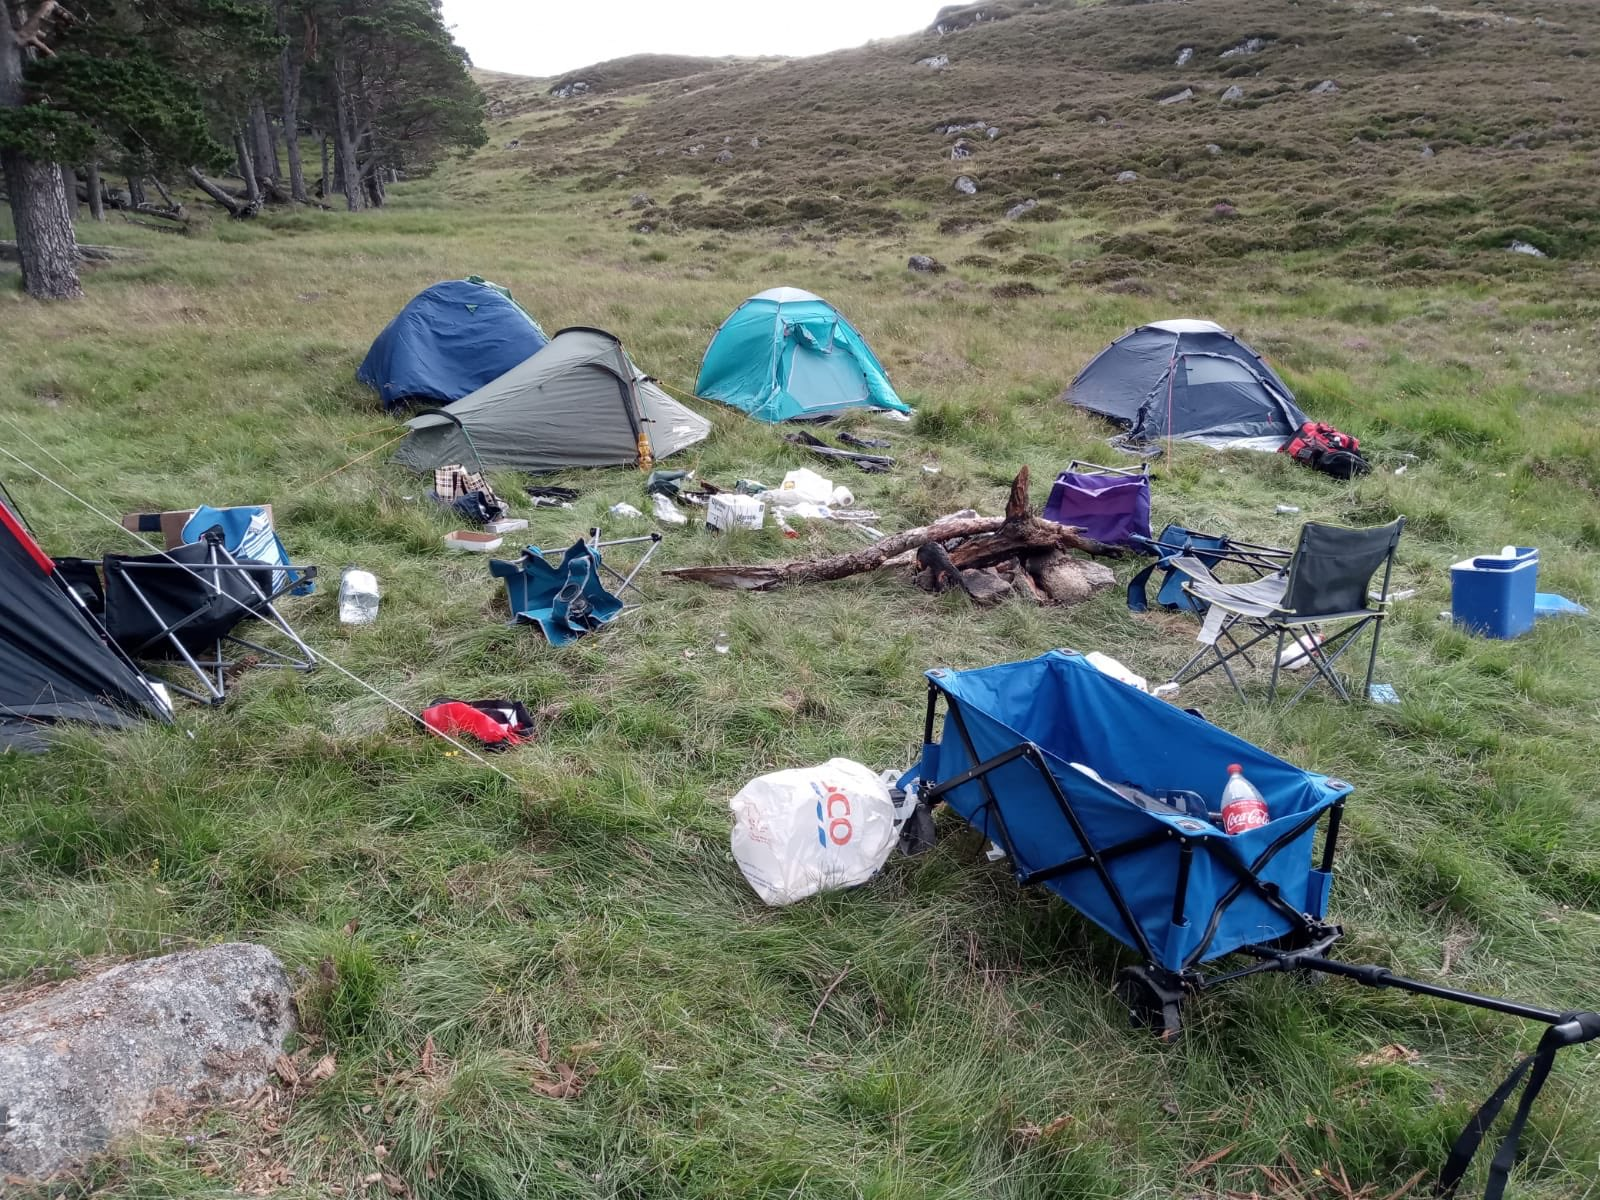 Balmoral rangers' photo of tents and rubbish on estate grounds